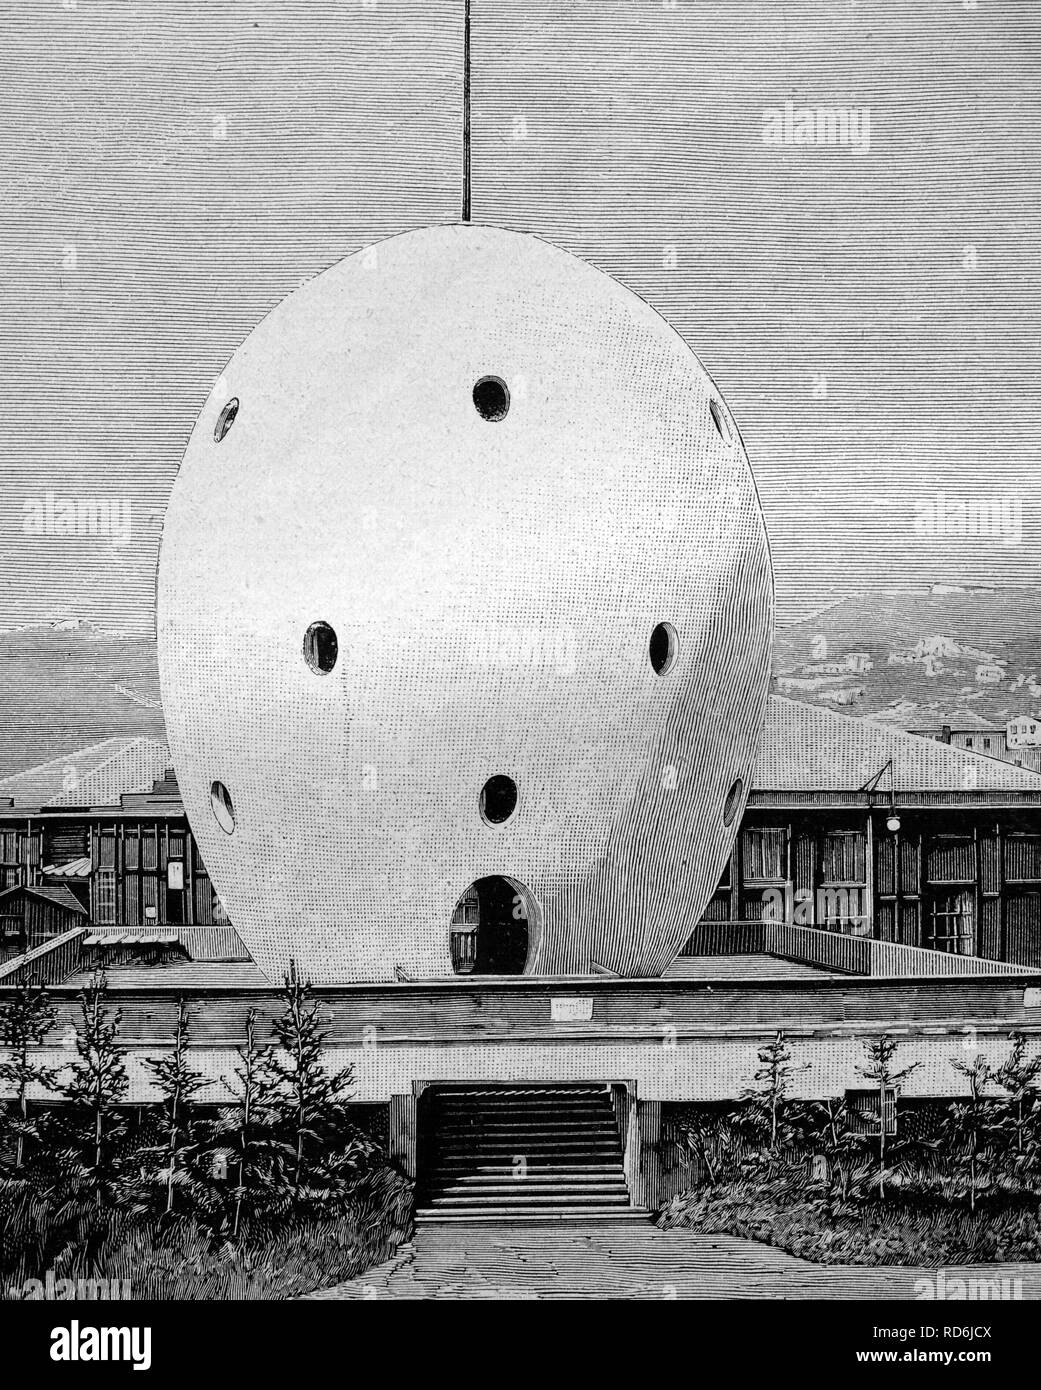 The egg of Columbus at the Columbus show in Genoa, Italy, historical illustration circa 1893 - Stock Image